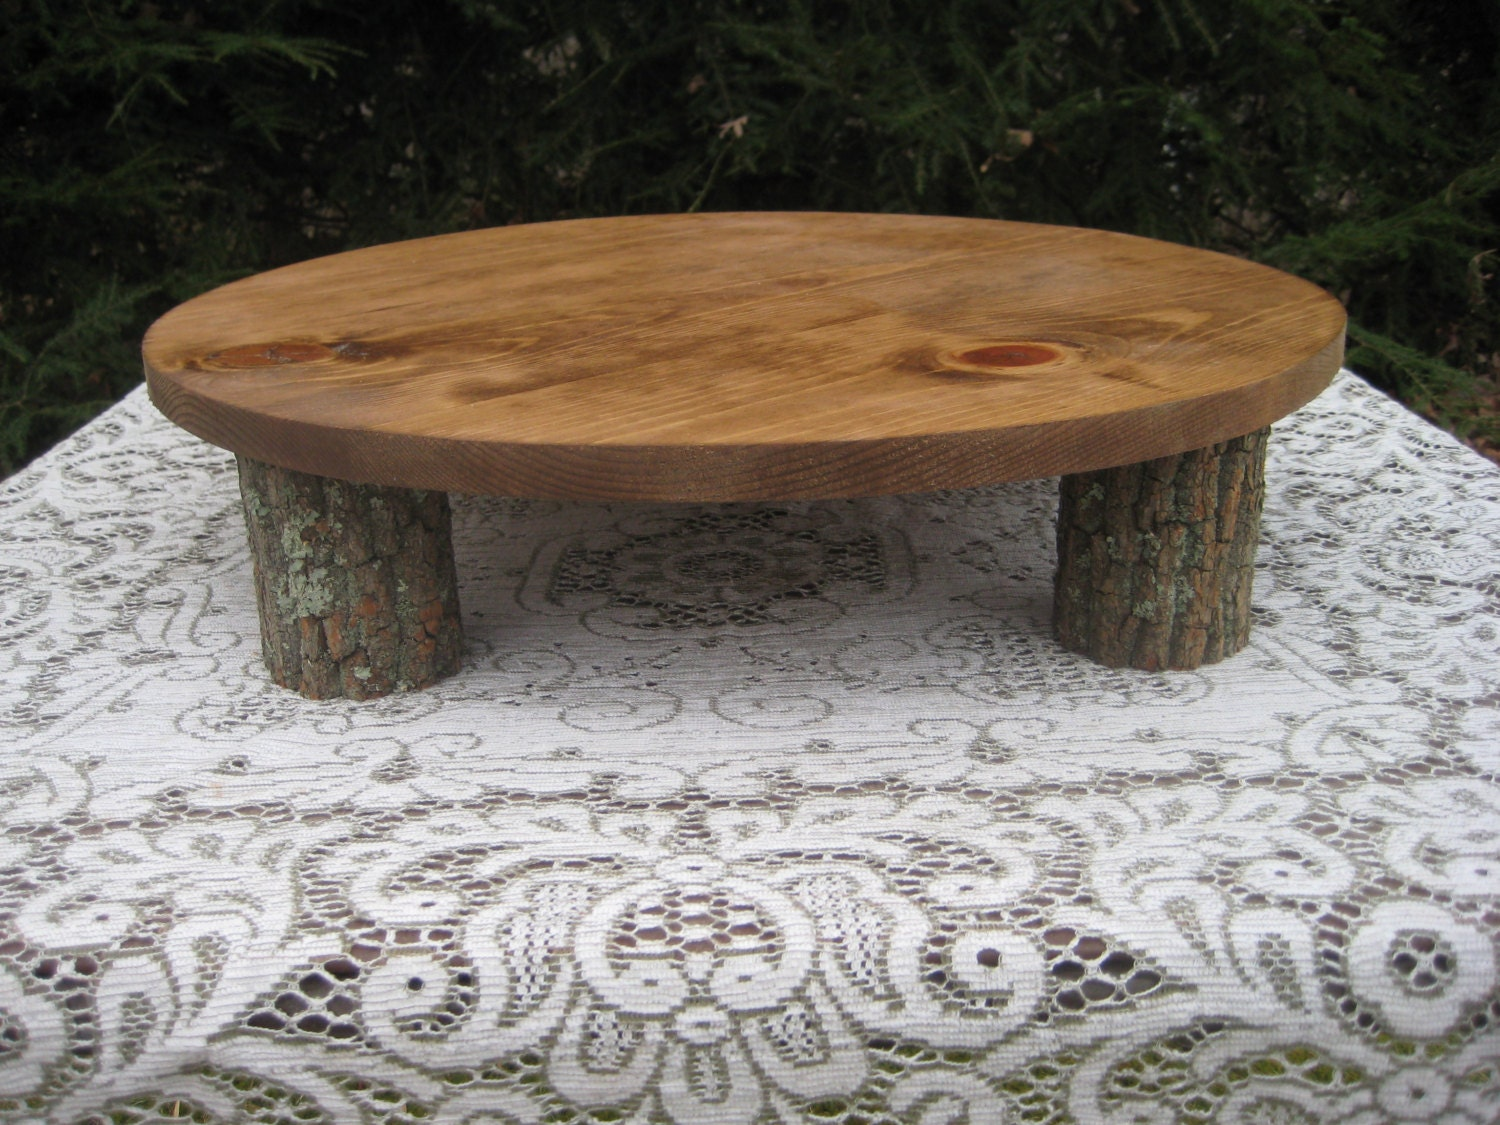 Making A Round Cake Stand Out Of A Tree Slice